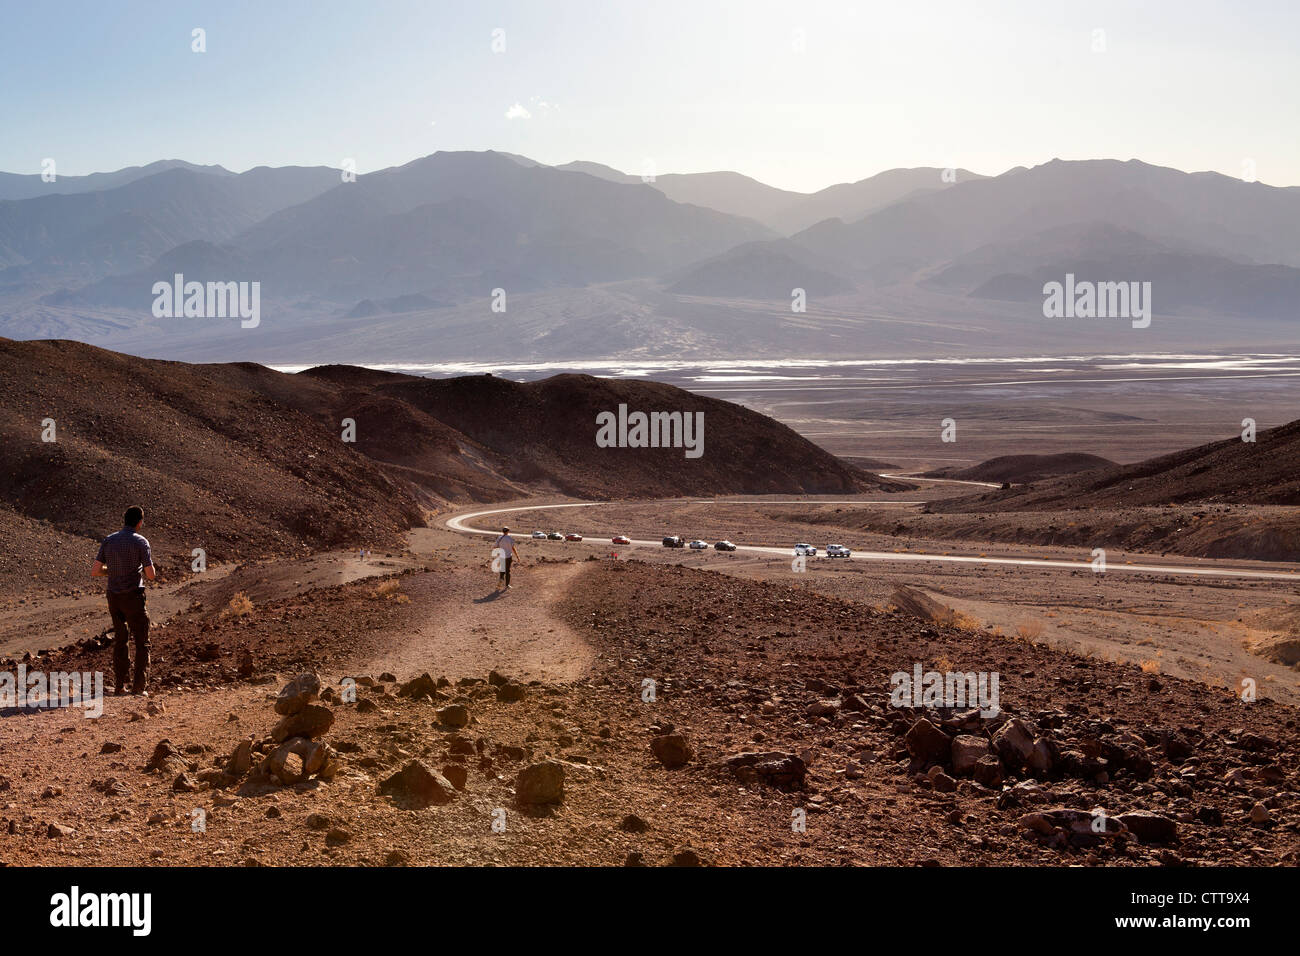 Palette d'artistes, la Death Valley, Californie Photo Stock